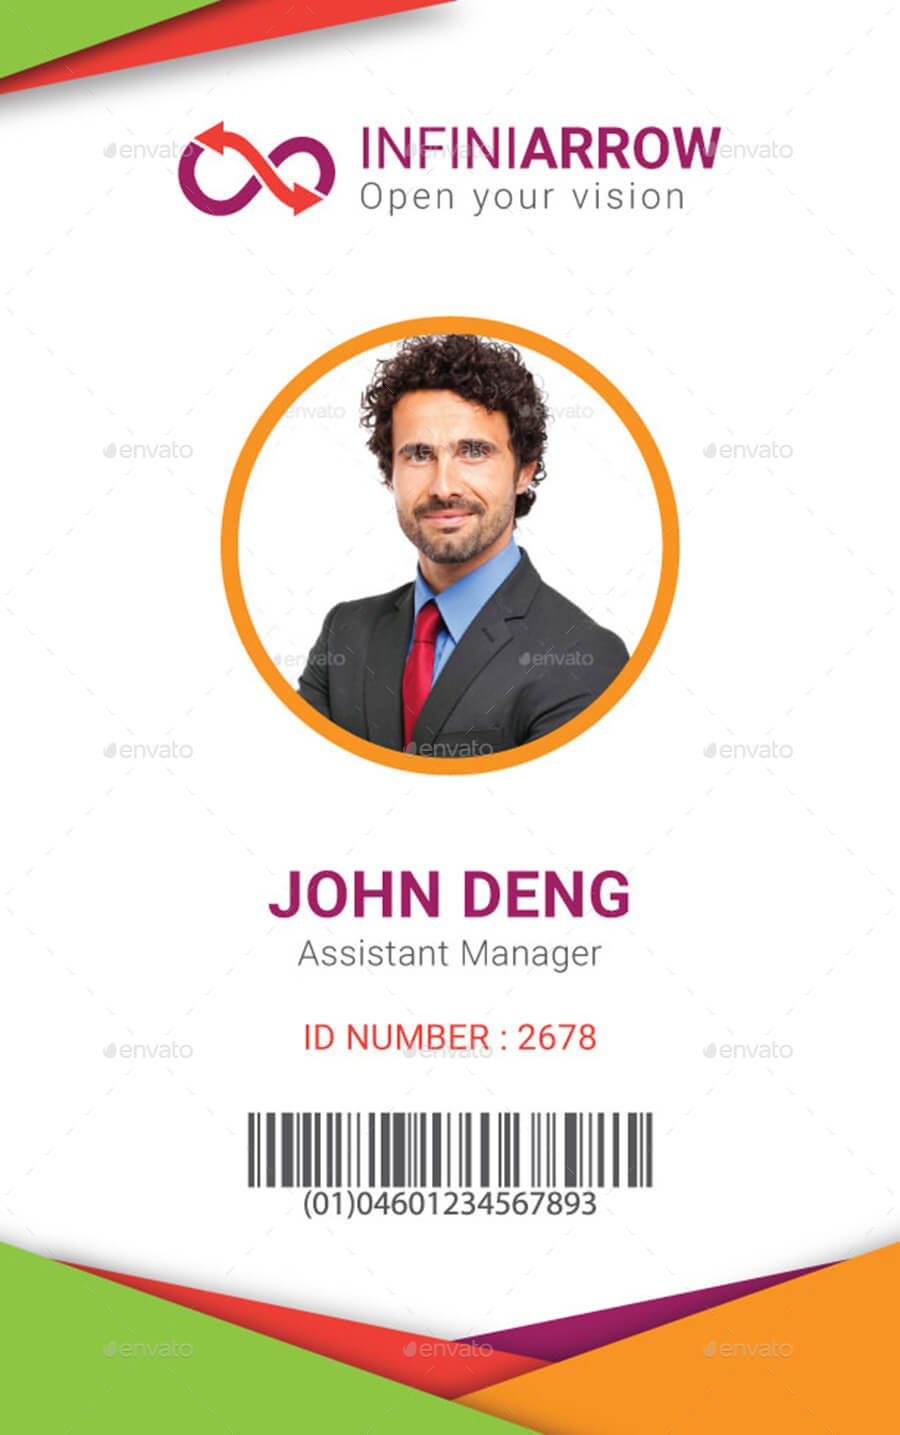 New 2019 Editable Id Card Templates | Business Letters Blog Throughout Portrait Id Card Template